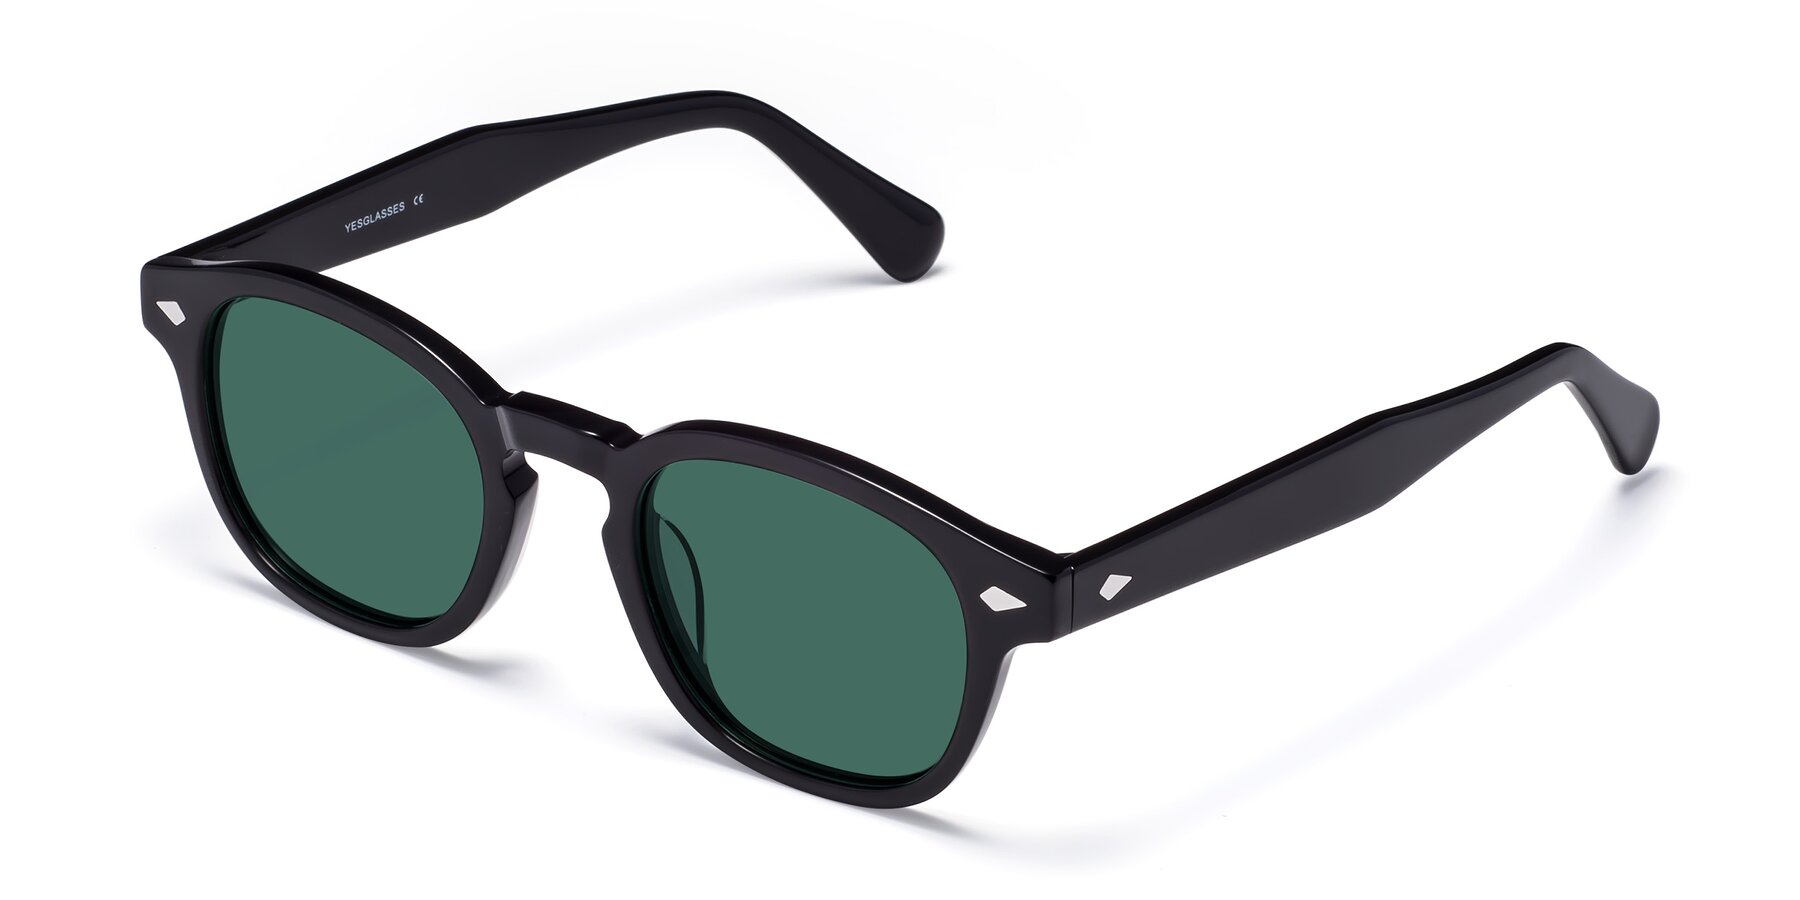 Angle of WALL-E in Black with Green Polarized Lenses